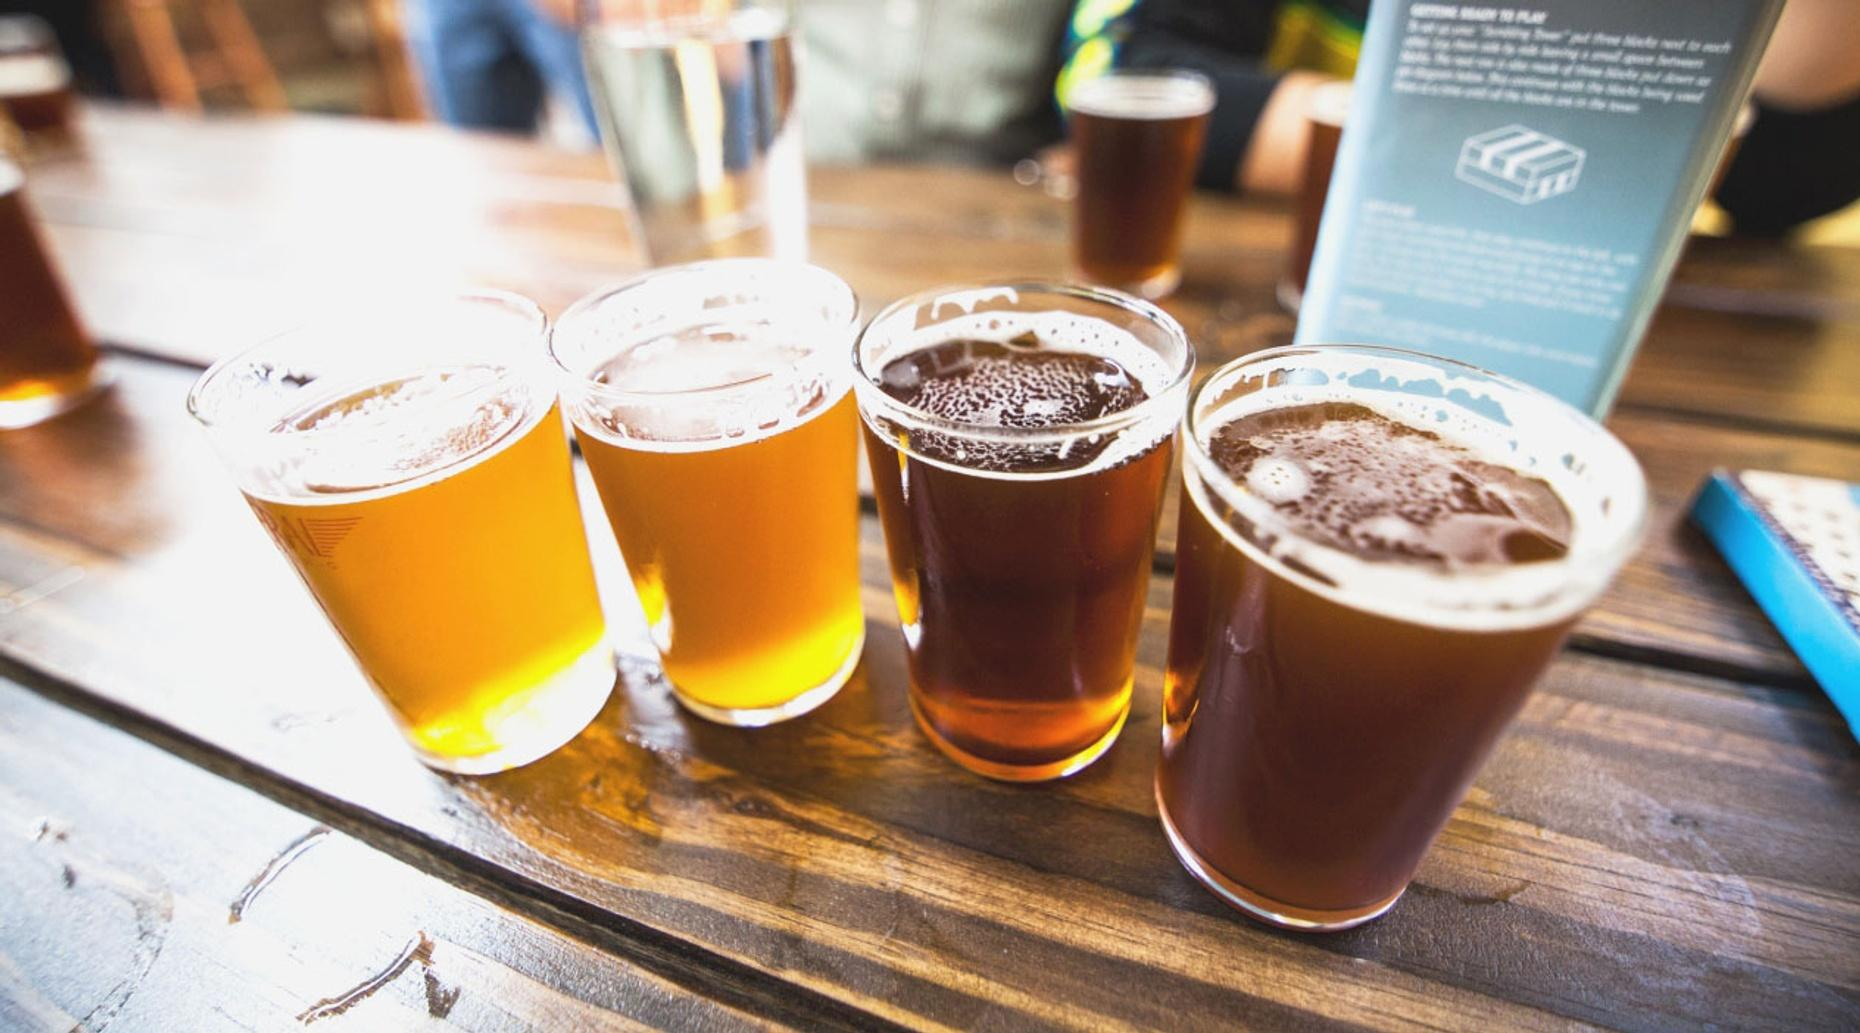 Boozy Brunch and Brewery Tour